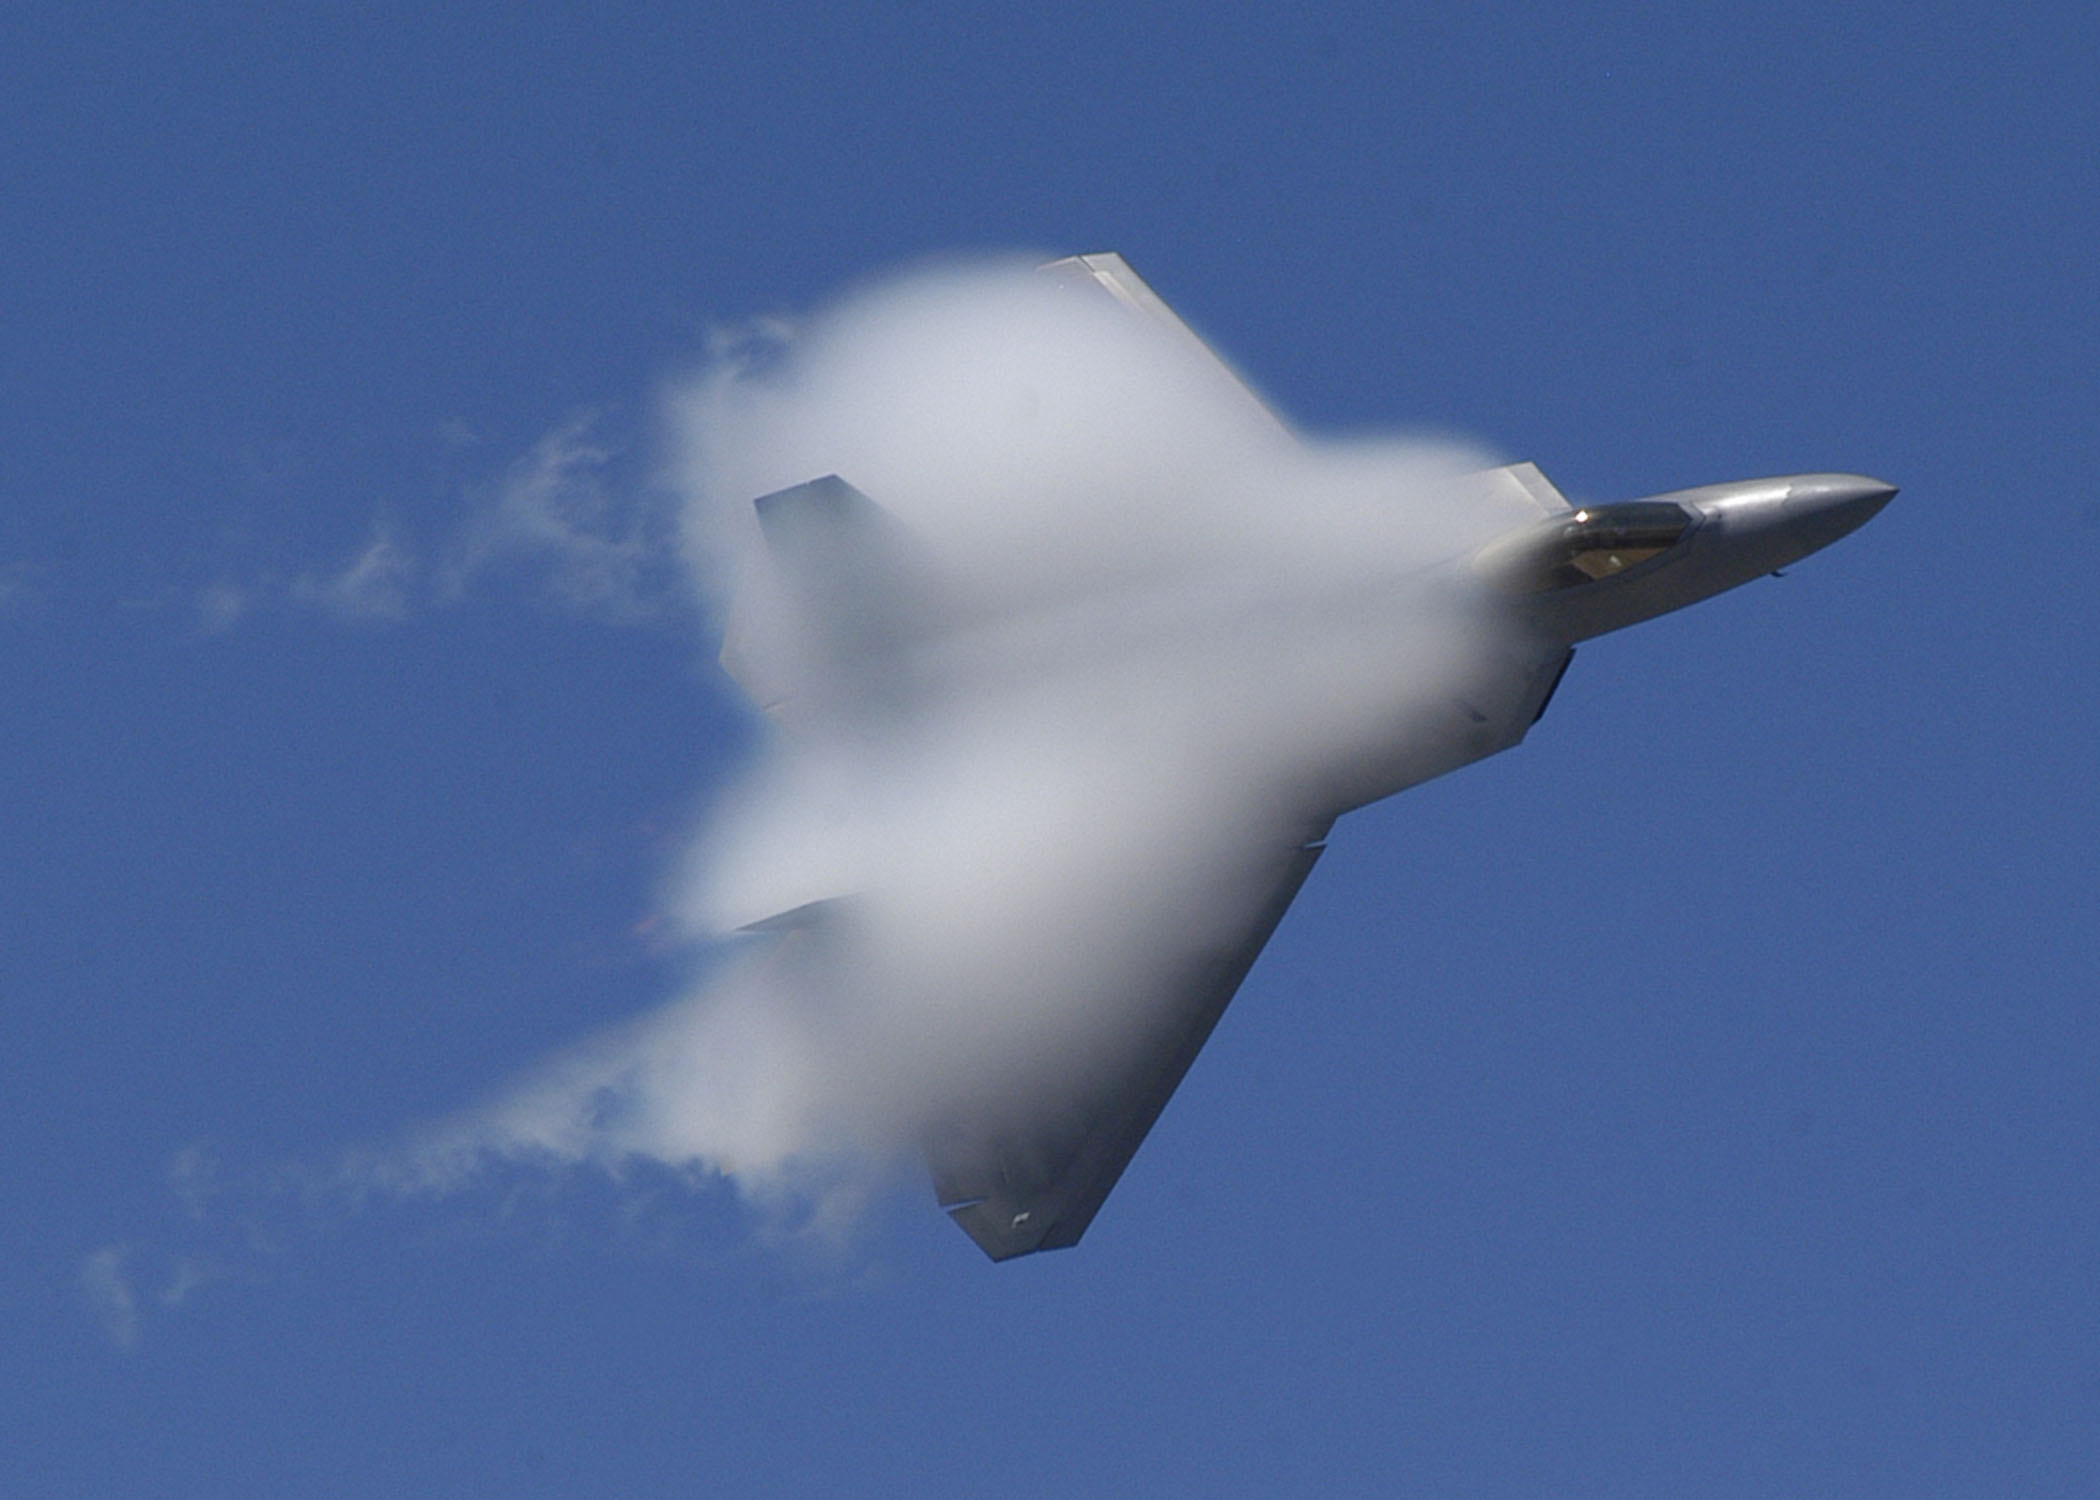 An F-22 Raptor reaching a velocity high enough to achieve a sonic boom. - Image Credit: Jason R. Williams/WikimediaCommons